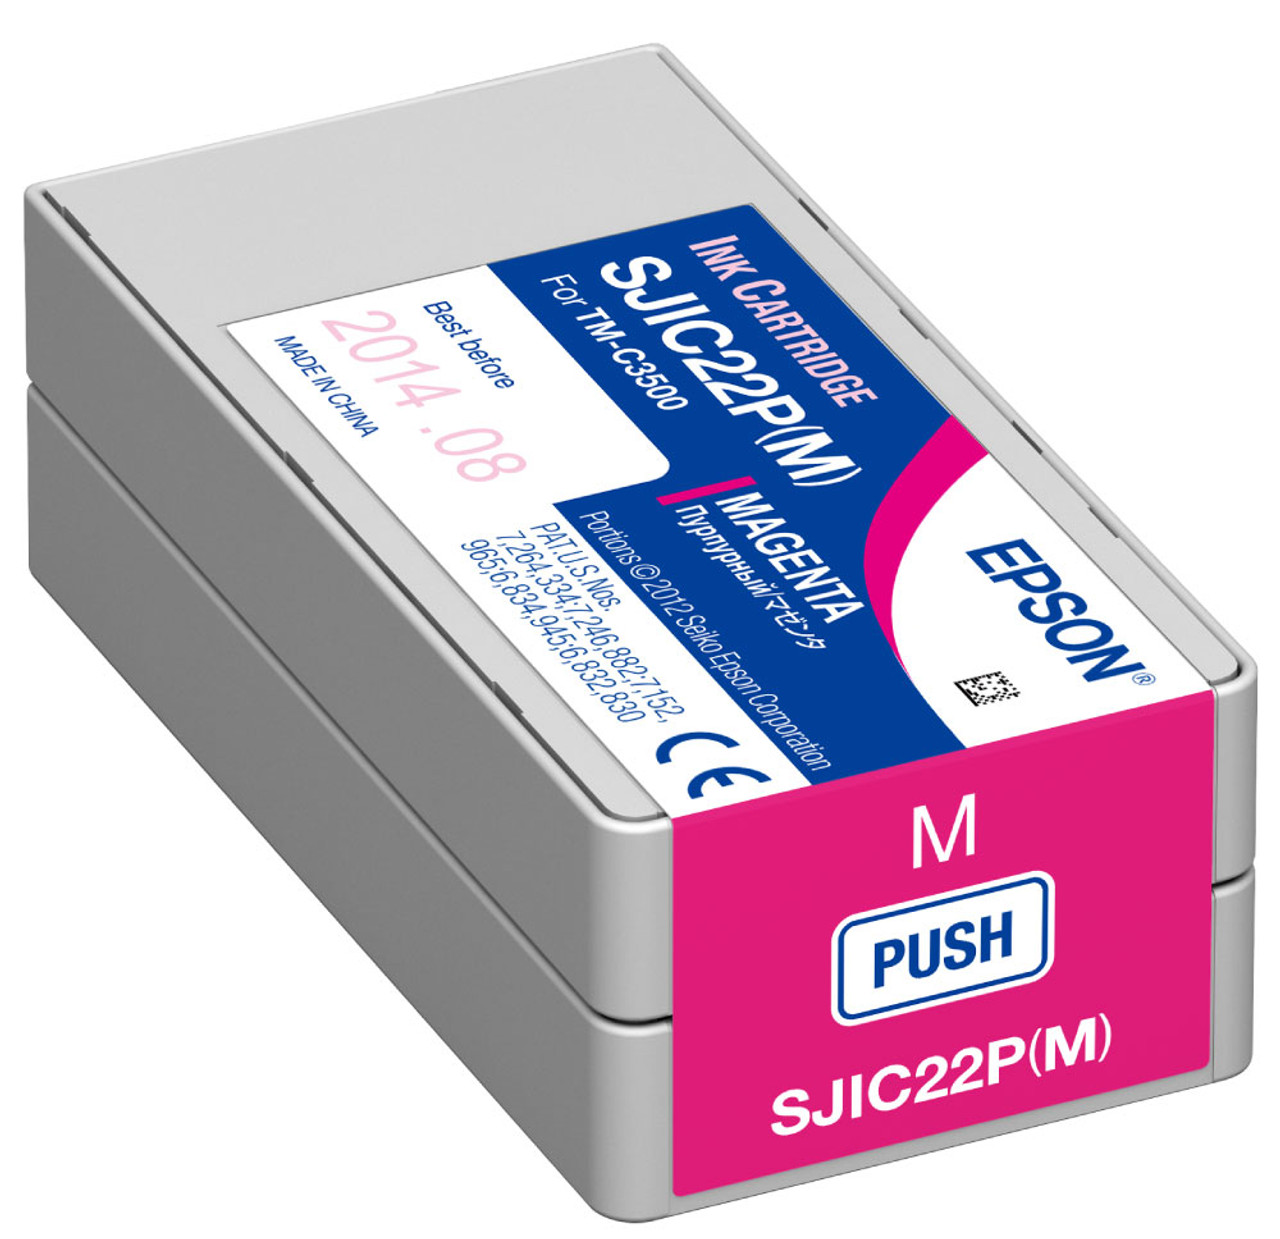 Epson TM-C3500 Magenta Ink Cartridge CJIC22P